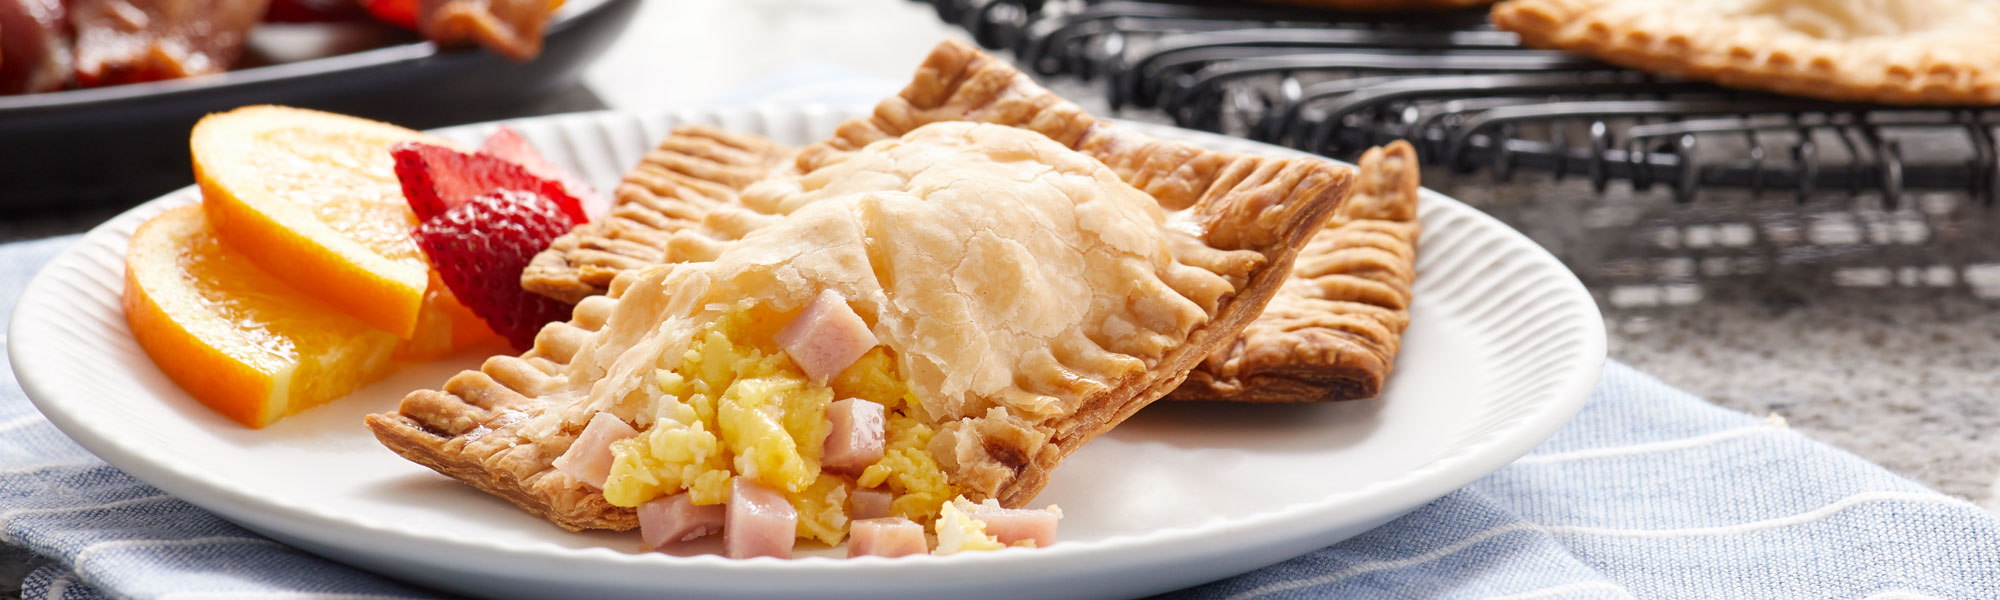 Food lifestyle photo of golden breakfast pastry filled with scrambled eggs and Smithfield ham